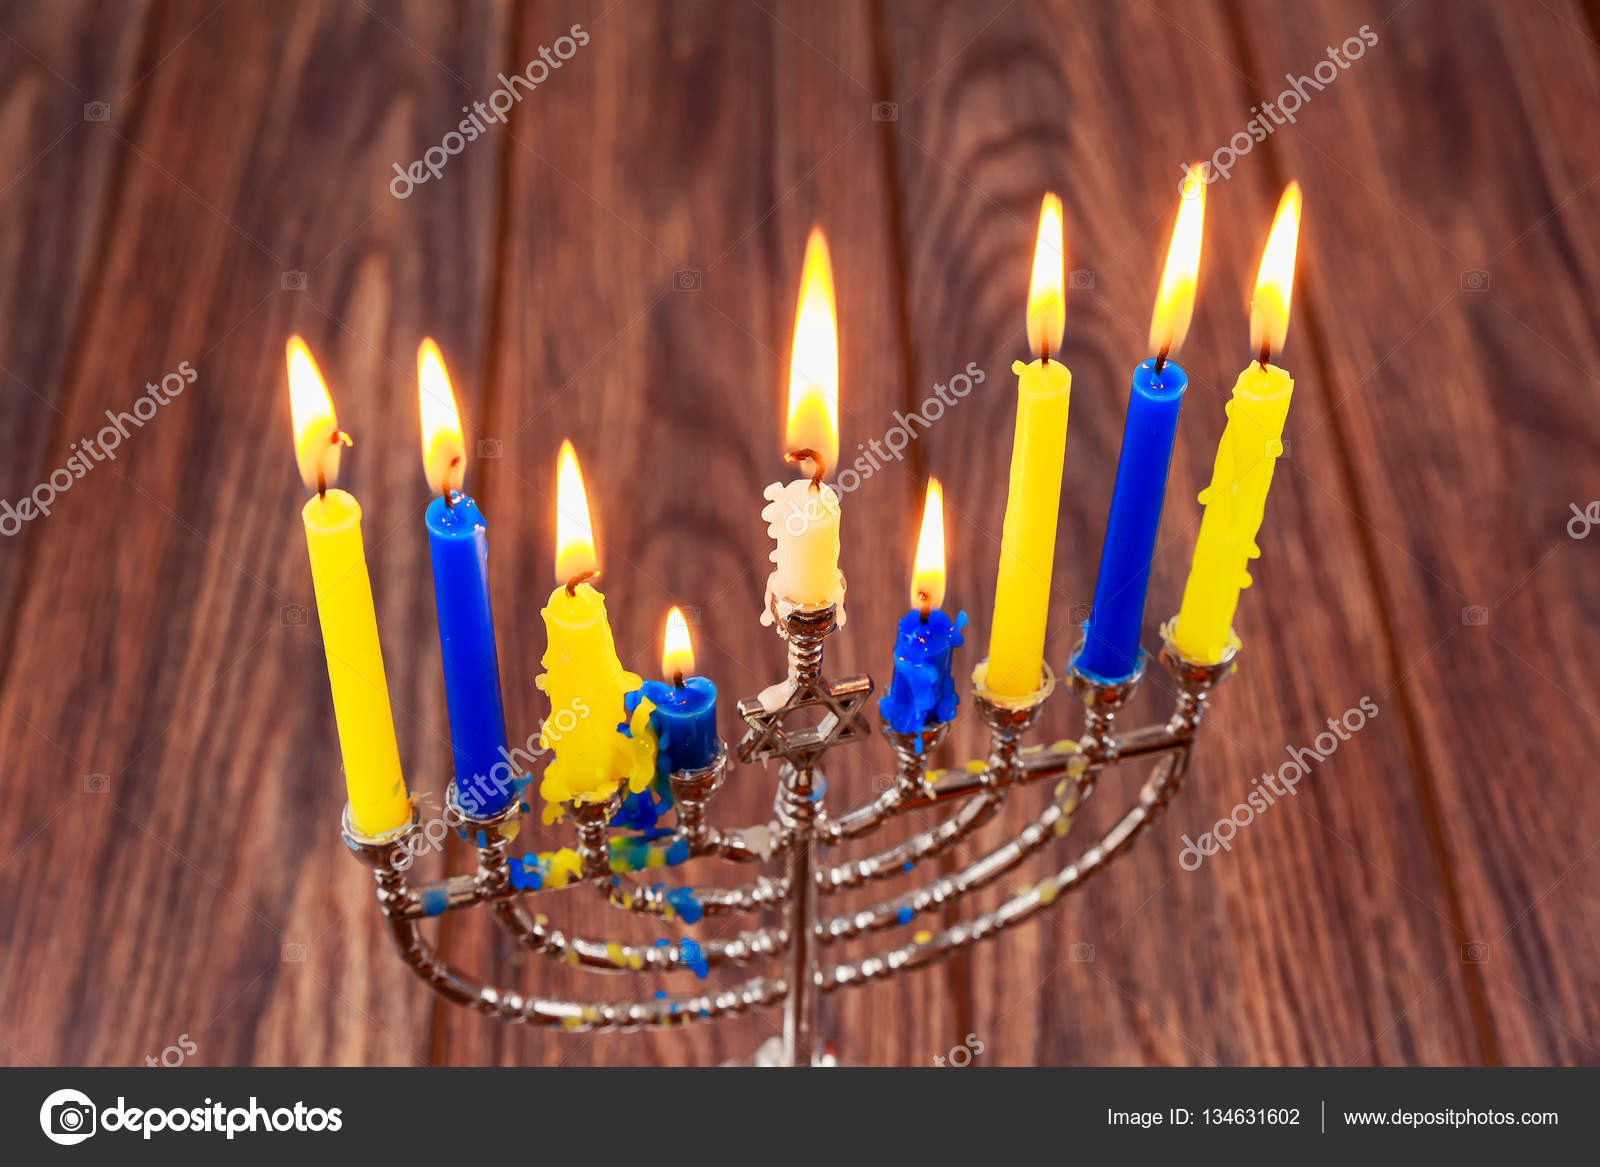 a report on chanukah festival of lights Chanukah - the festival of lights 11th december - 19th december 2009 introduction chanukah [sometimes spelled as hanukah] is a hebrew word that means dedication.